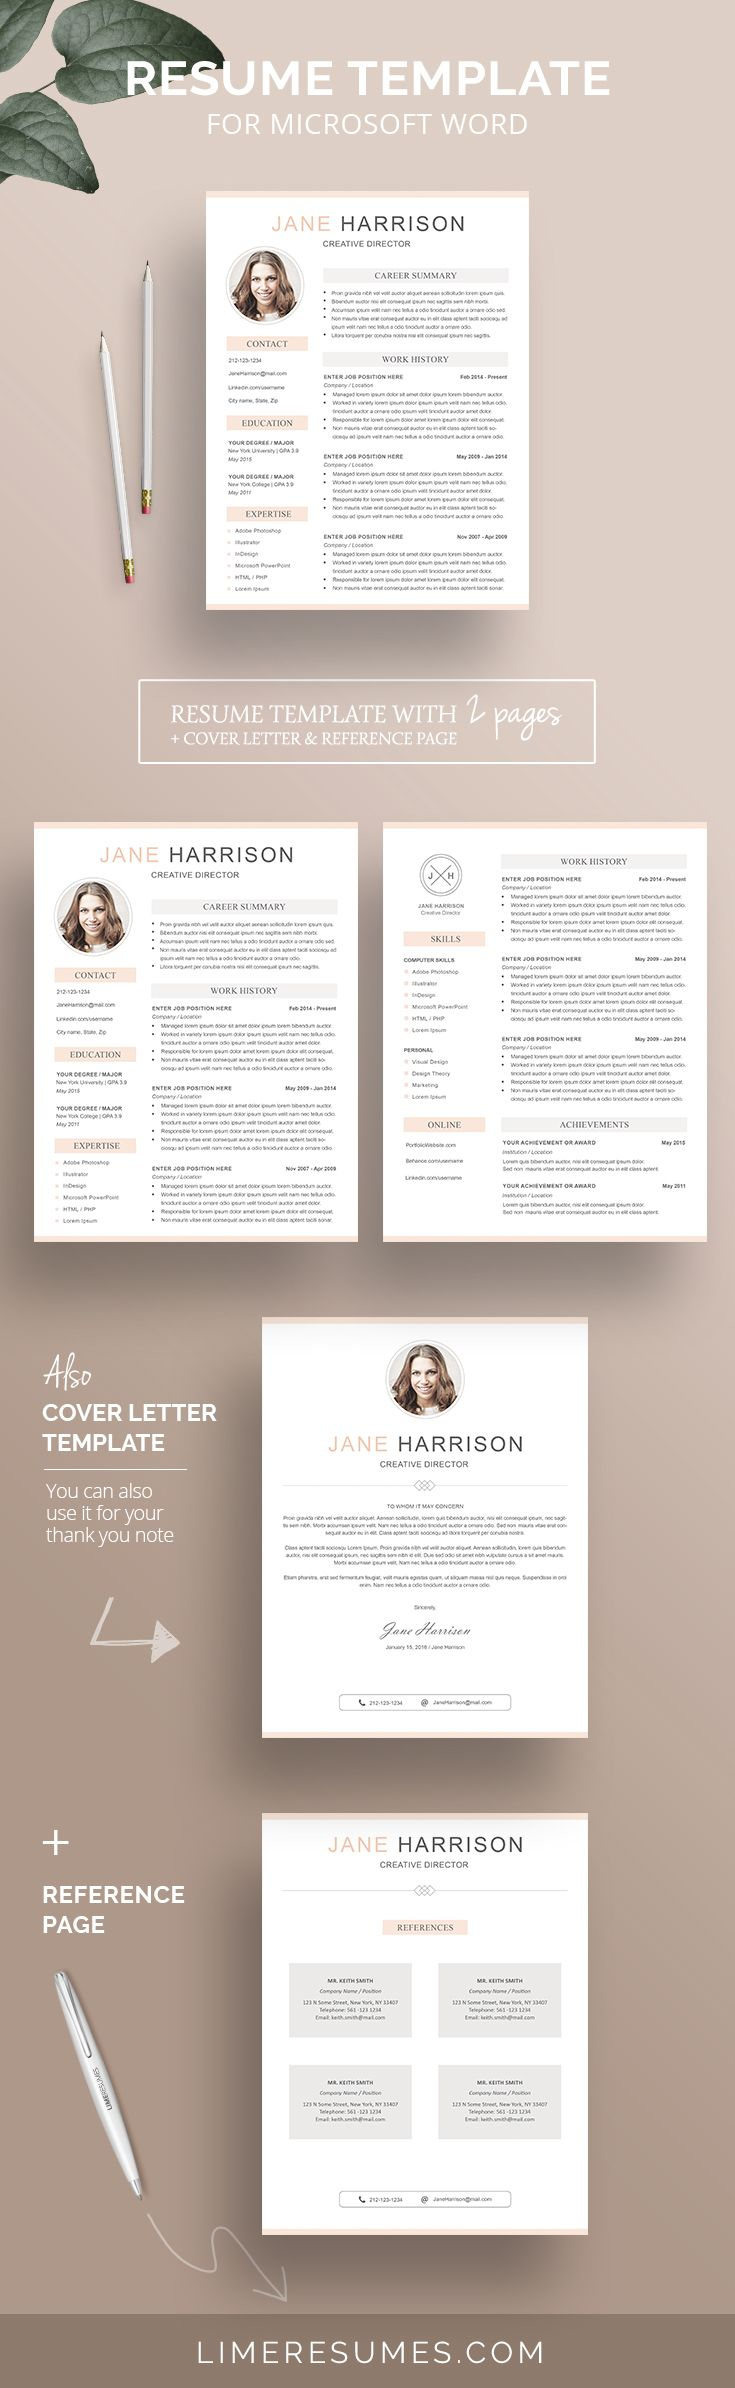 Best 25+ Cover Letter Template Ideas On Pinterest | Cover Letter Example,  Resume Work And Resume Writing  Template For Cover Letter